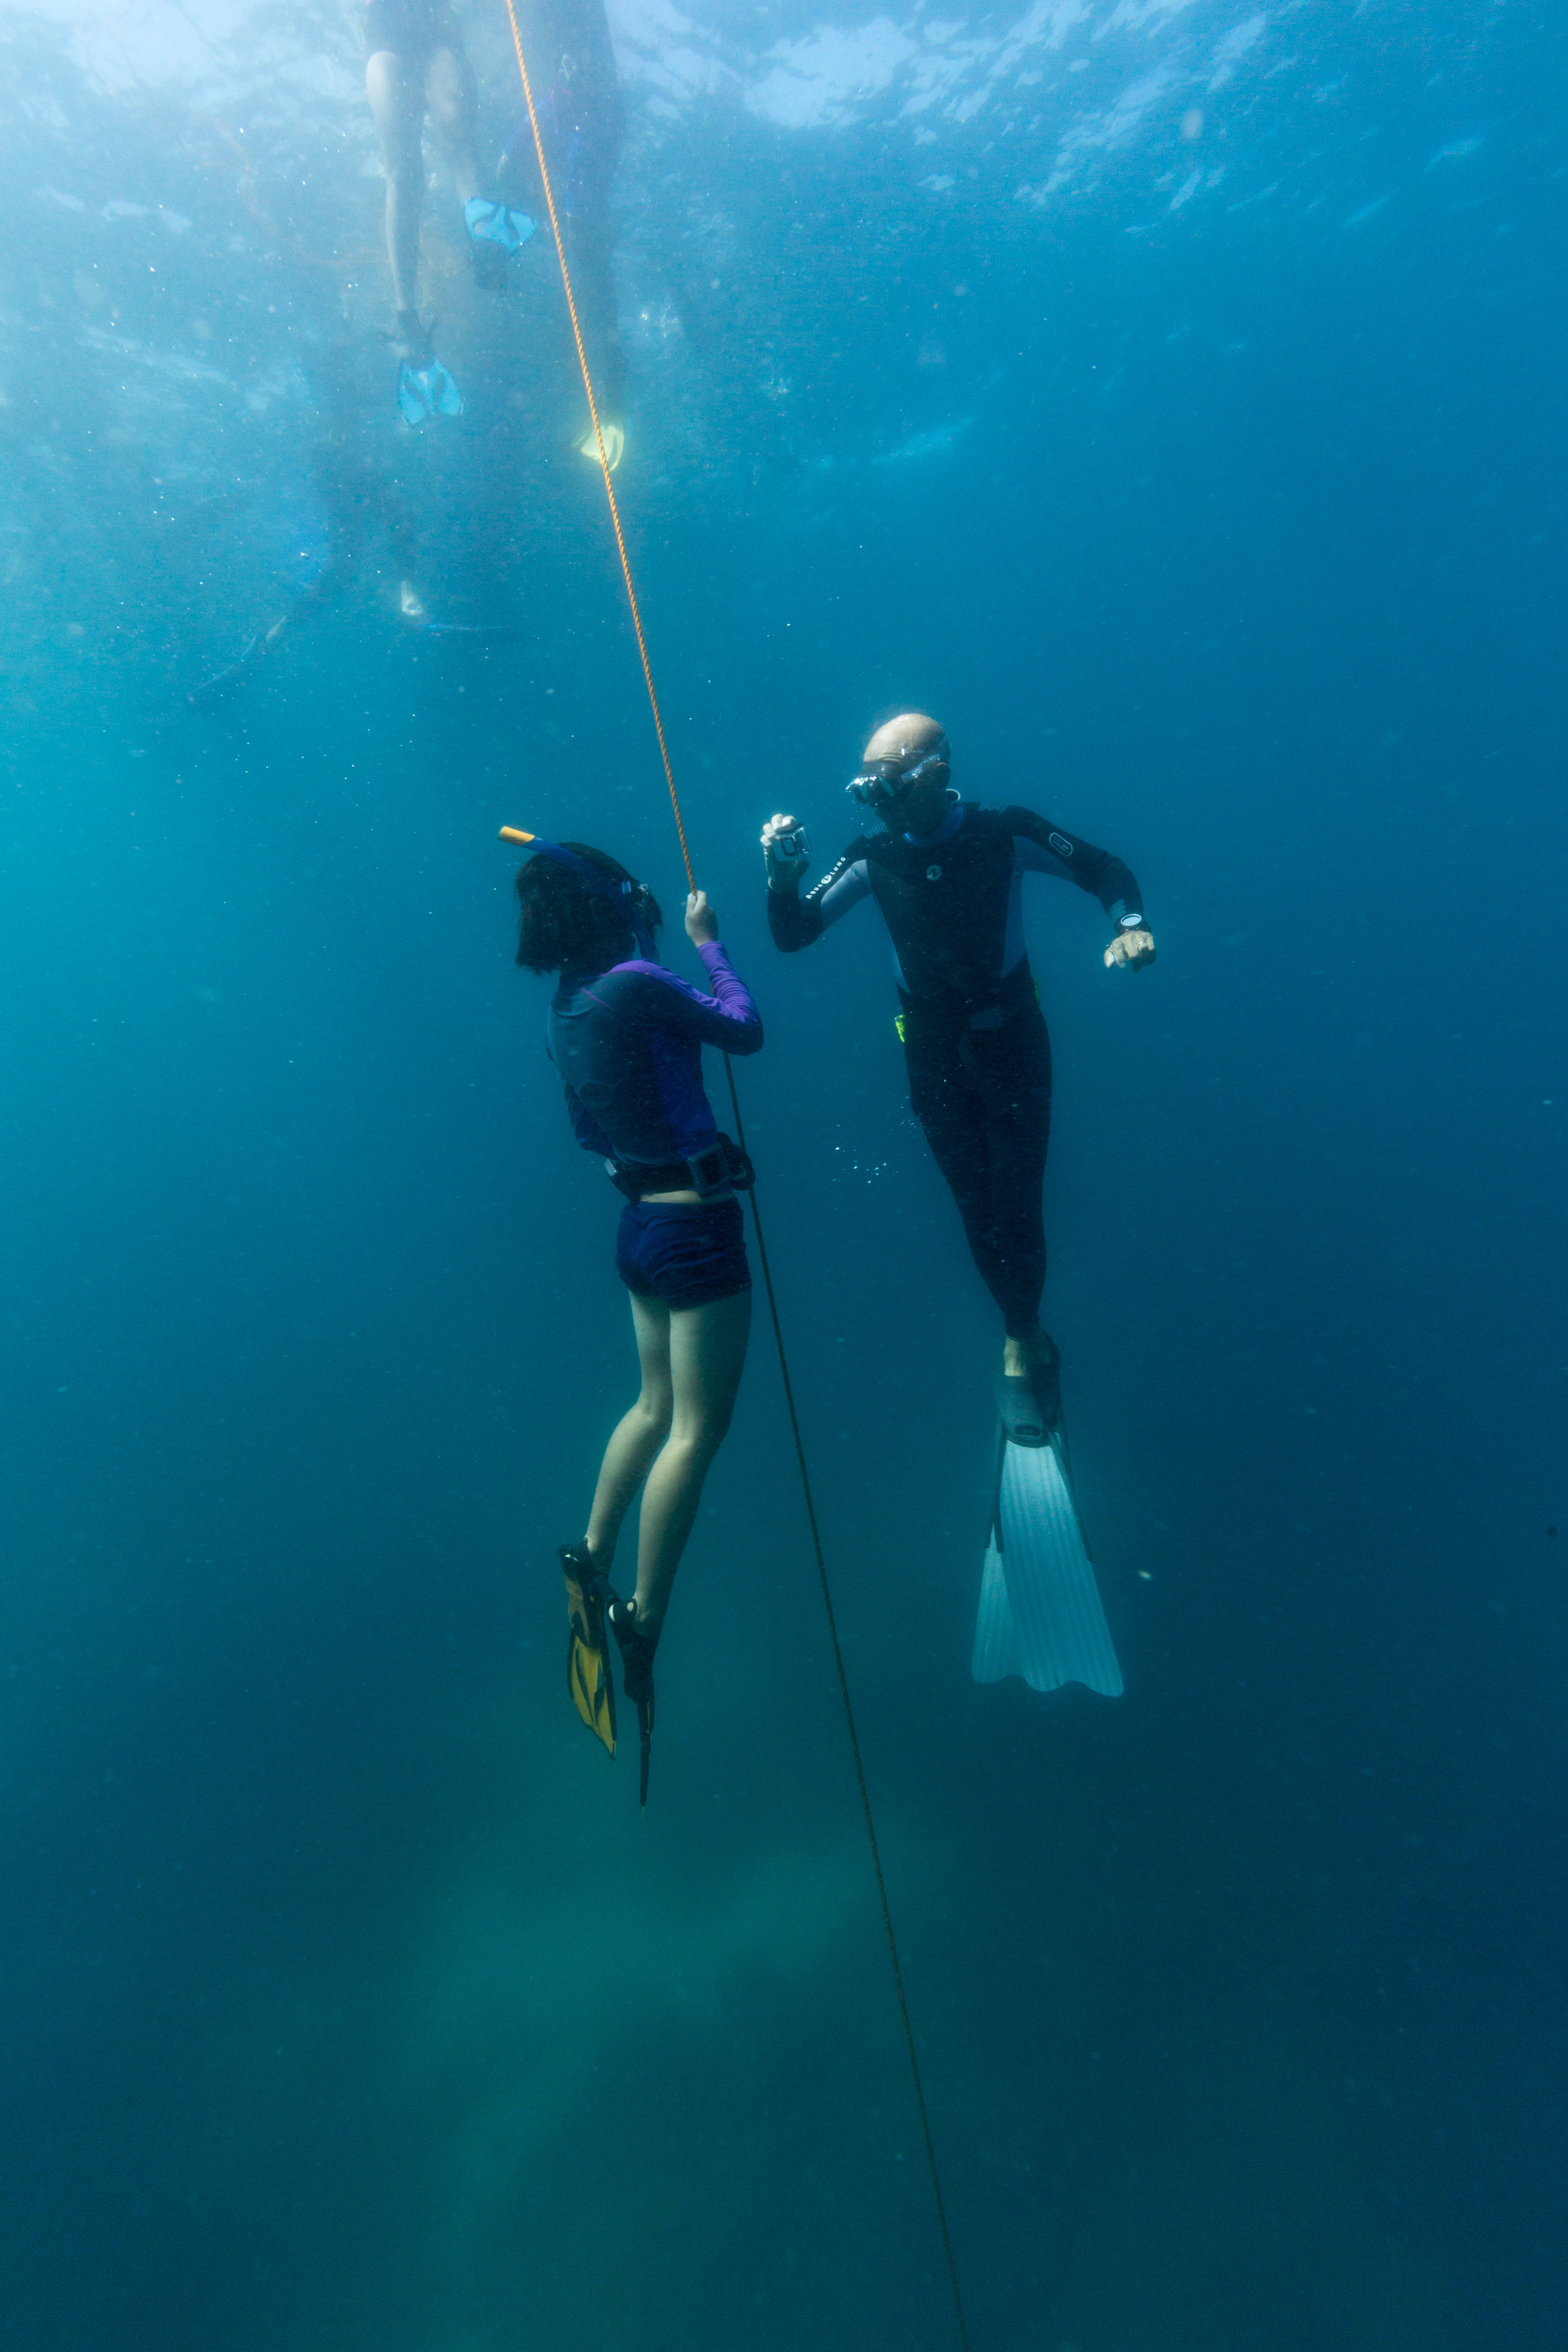 Mary Jean learning how to free dive, Apo Island, Philippines